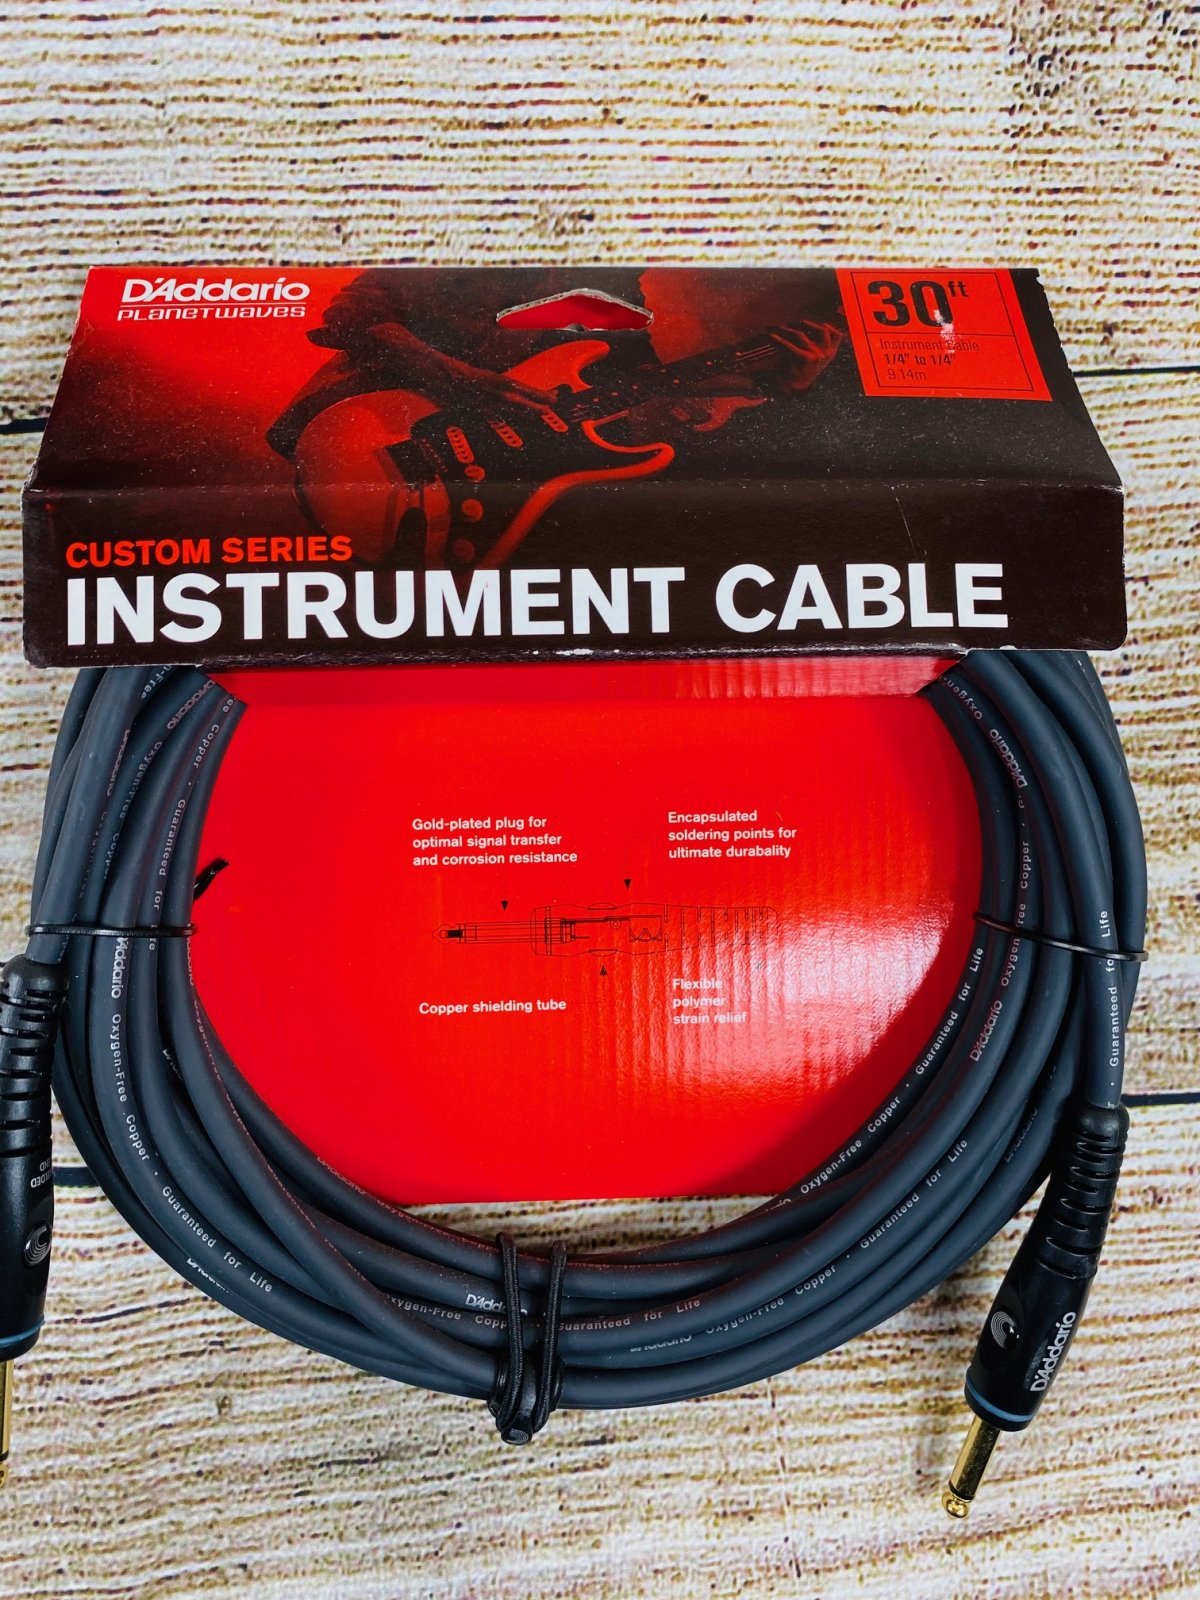 D'Addario PW-G-30 Custom Series Straight to Straight Instrument Cable - 30 foot